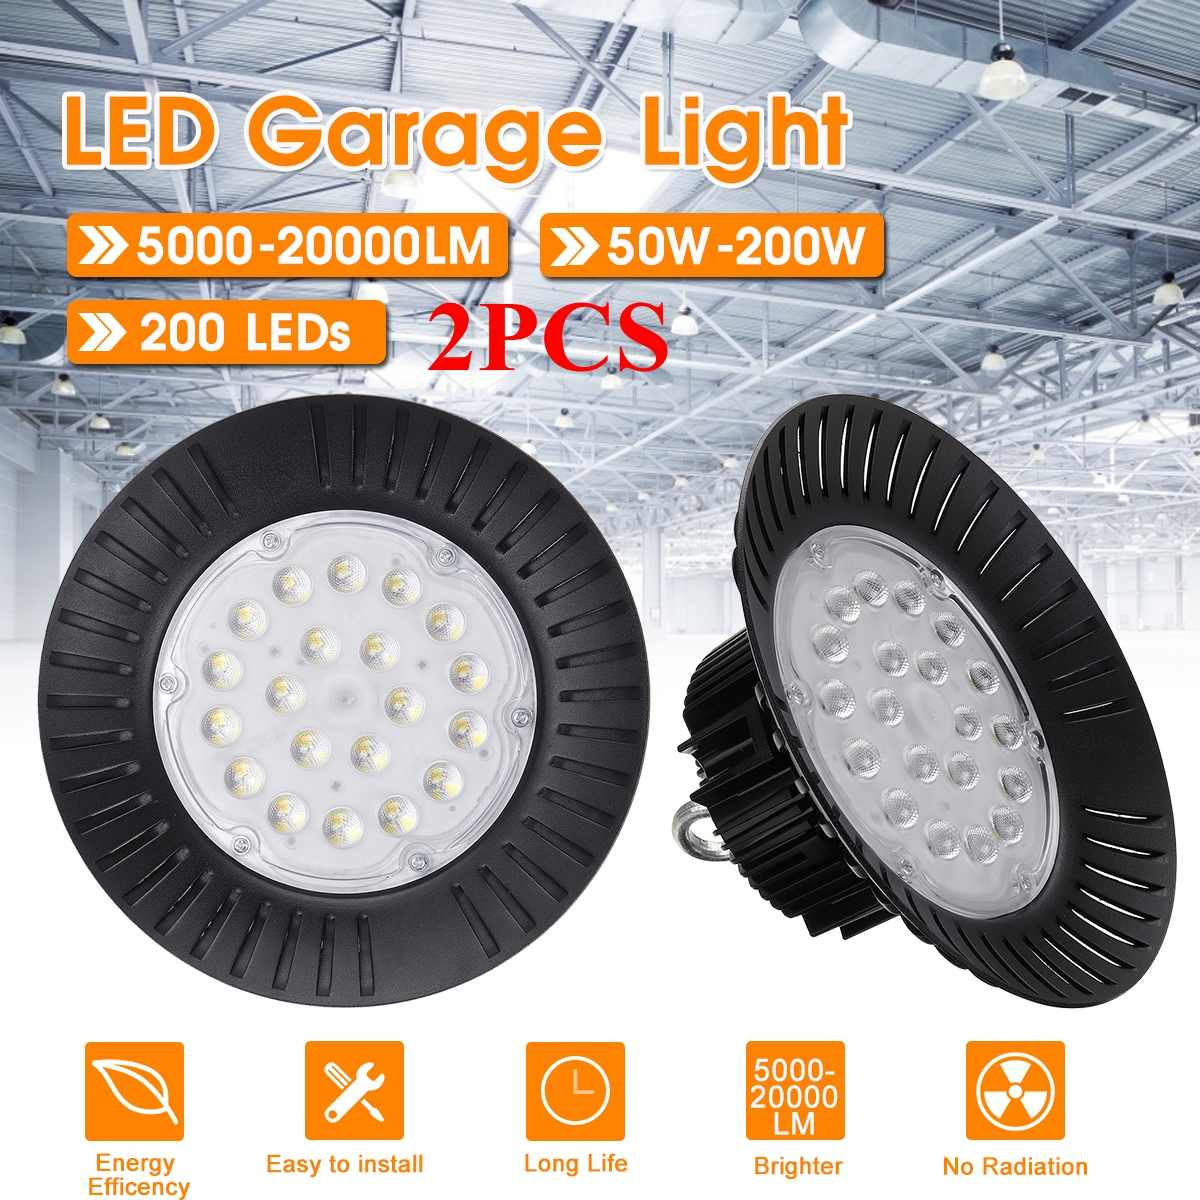 2PCS <font><b>200W</b></font> for UFO LED Lights <font><b>110V</b></font> <font><b>220V</b></font> Waterproof Commercial Lighting Industrial lamp Warehouse Led High Bay Lamp Garage Light image